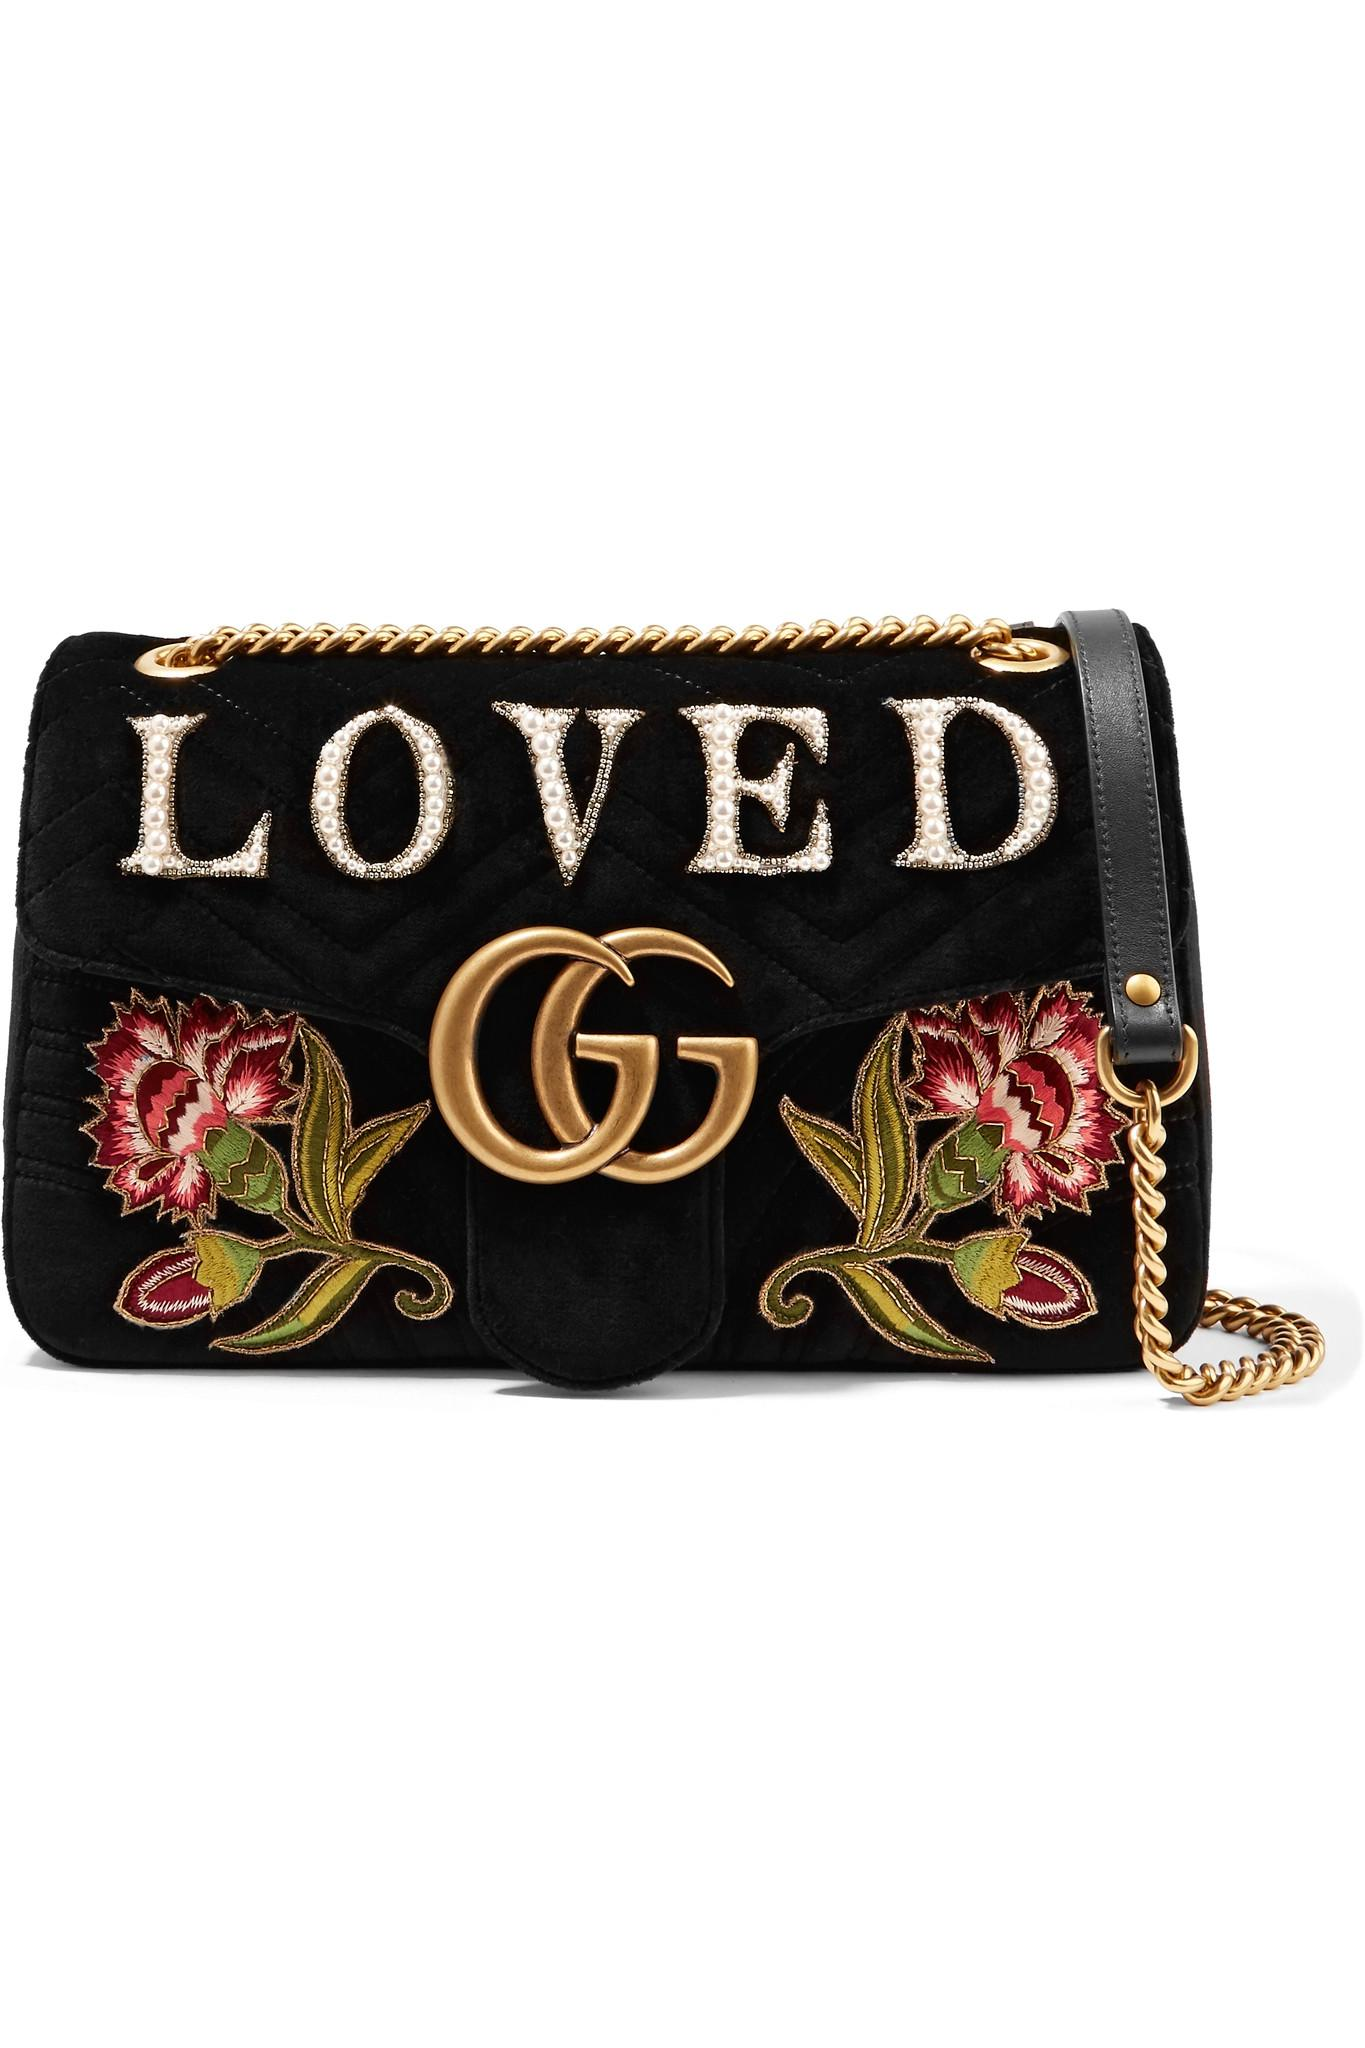 d44d2cff7edf Gucci. Women's Black Gg Marmont Medium Embroidered Matelassé Velvet  Shoulder Bag